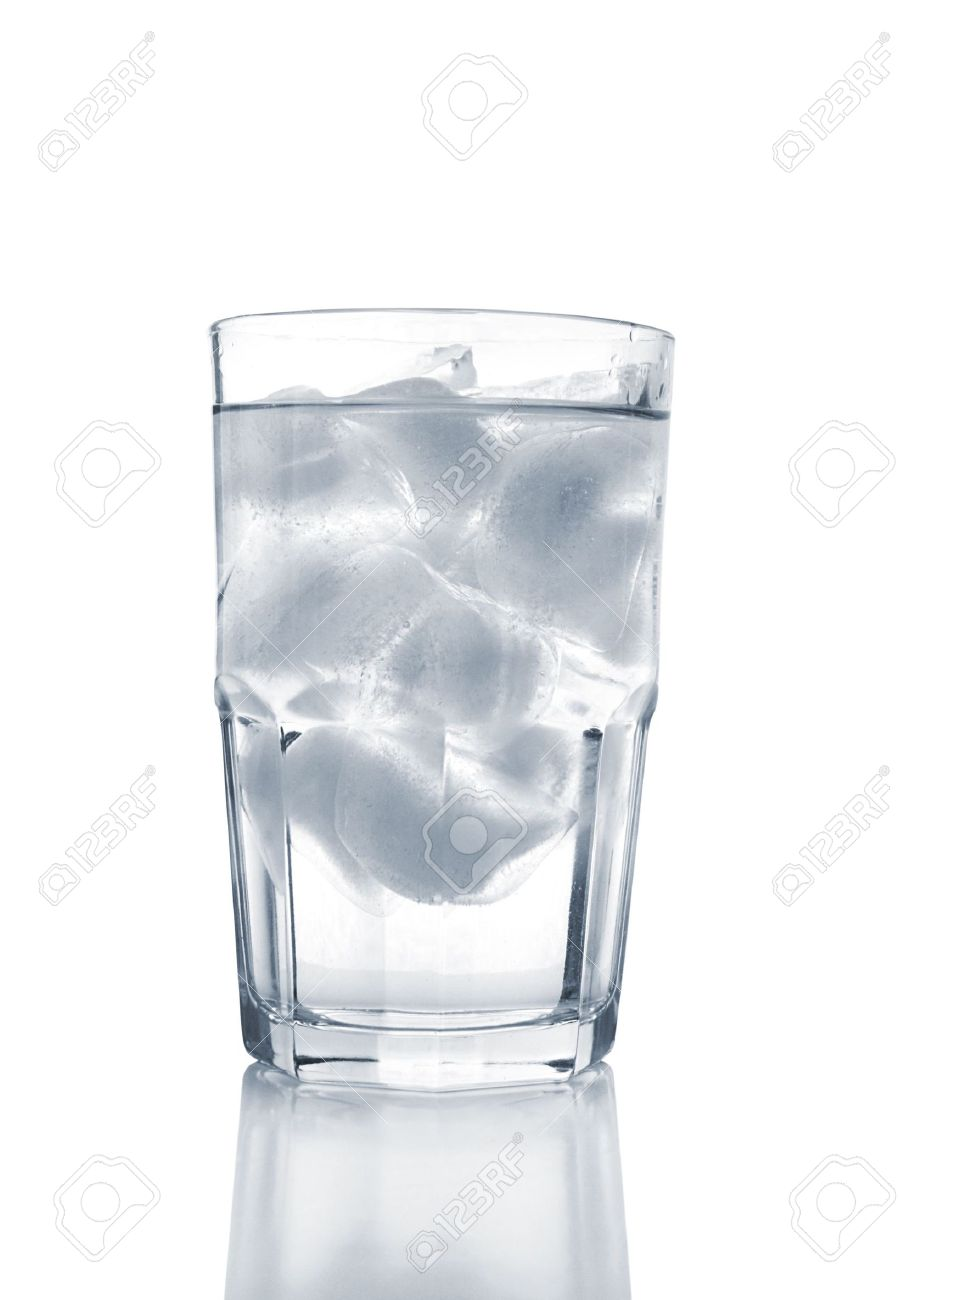 Glass of Ice Water Stock Photo - 2569032